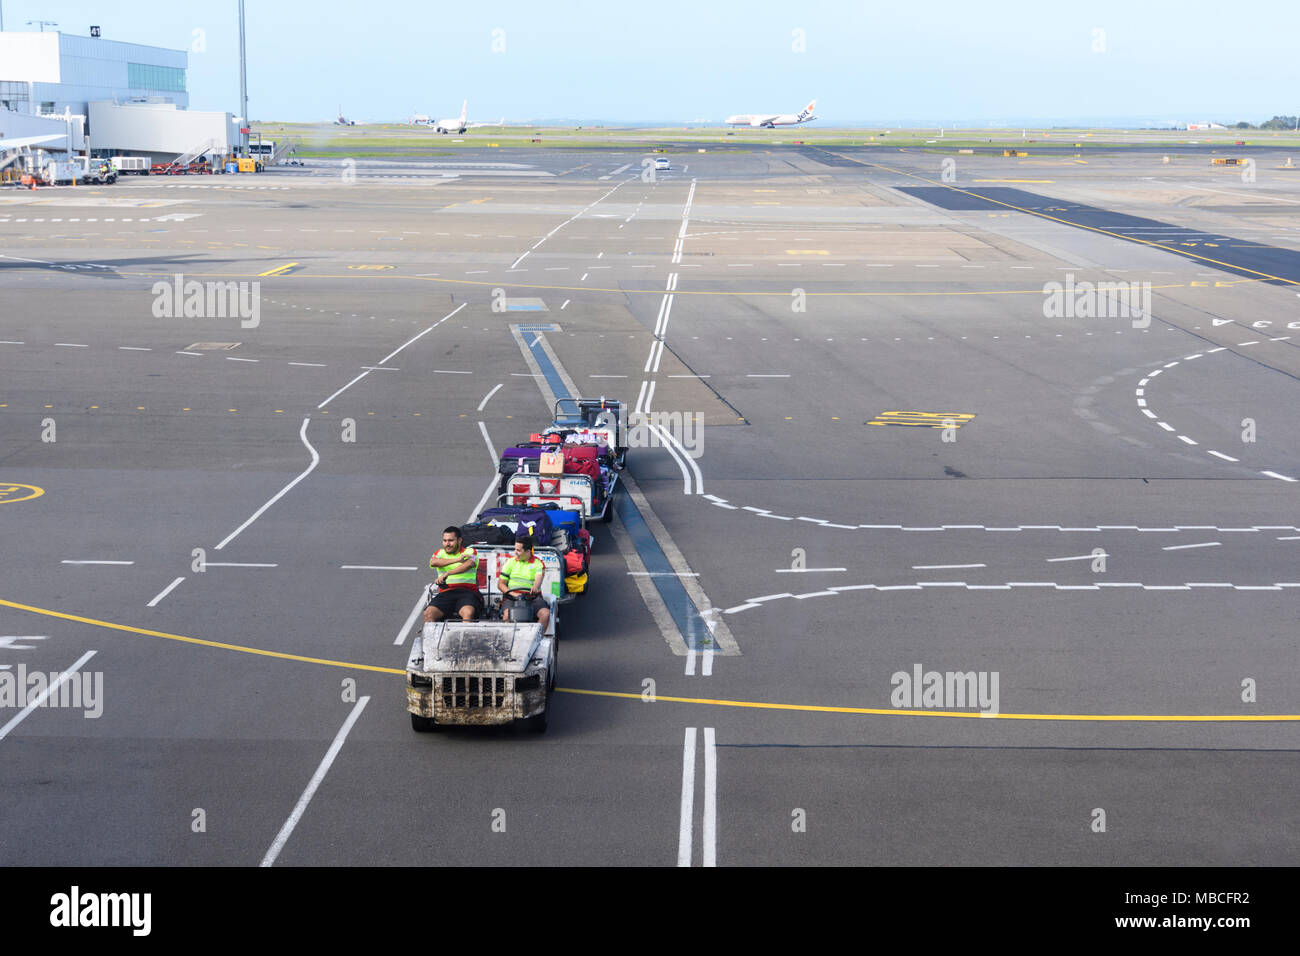 Ground Staff driving baggage handling carts on the tarmac at Sydney Airport, Australia - Stock Image